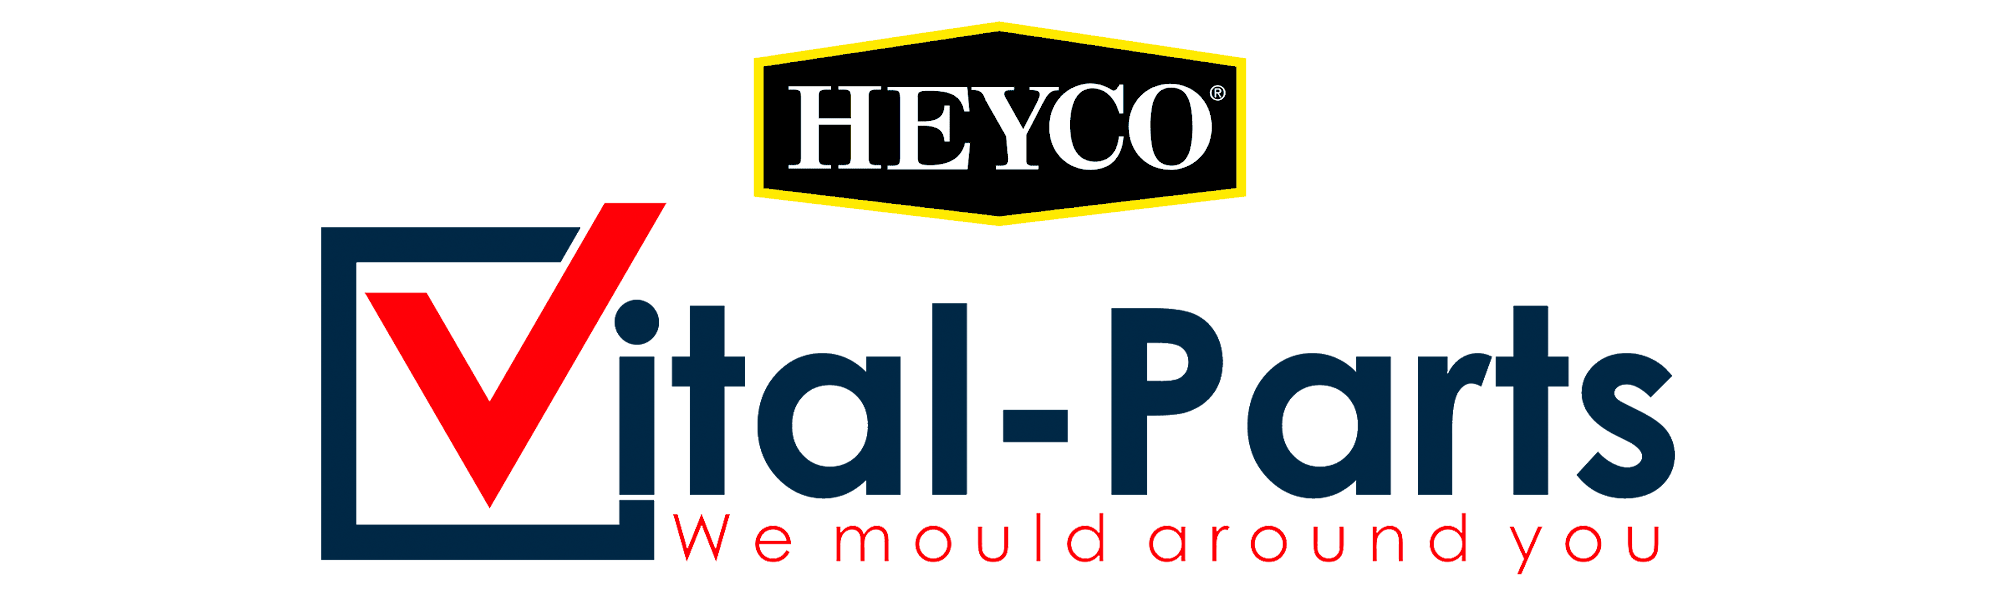 Vital Parts Become Heyco Distributors In The UK